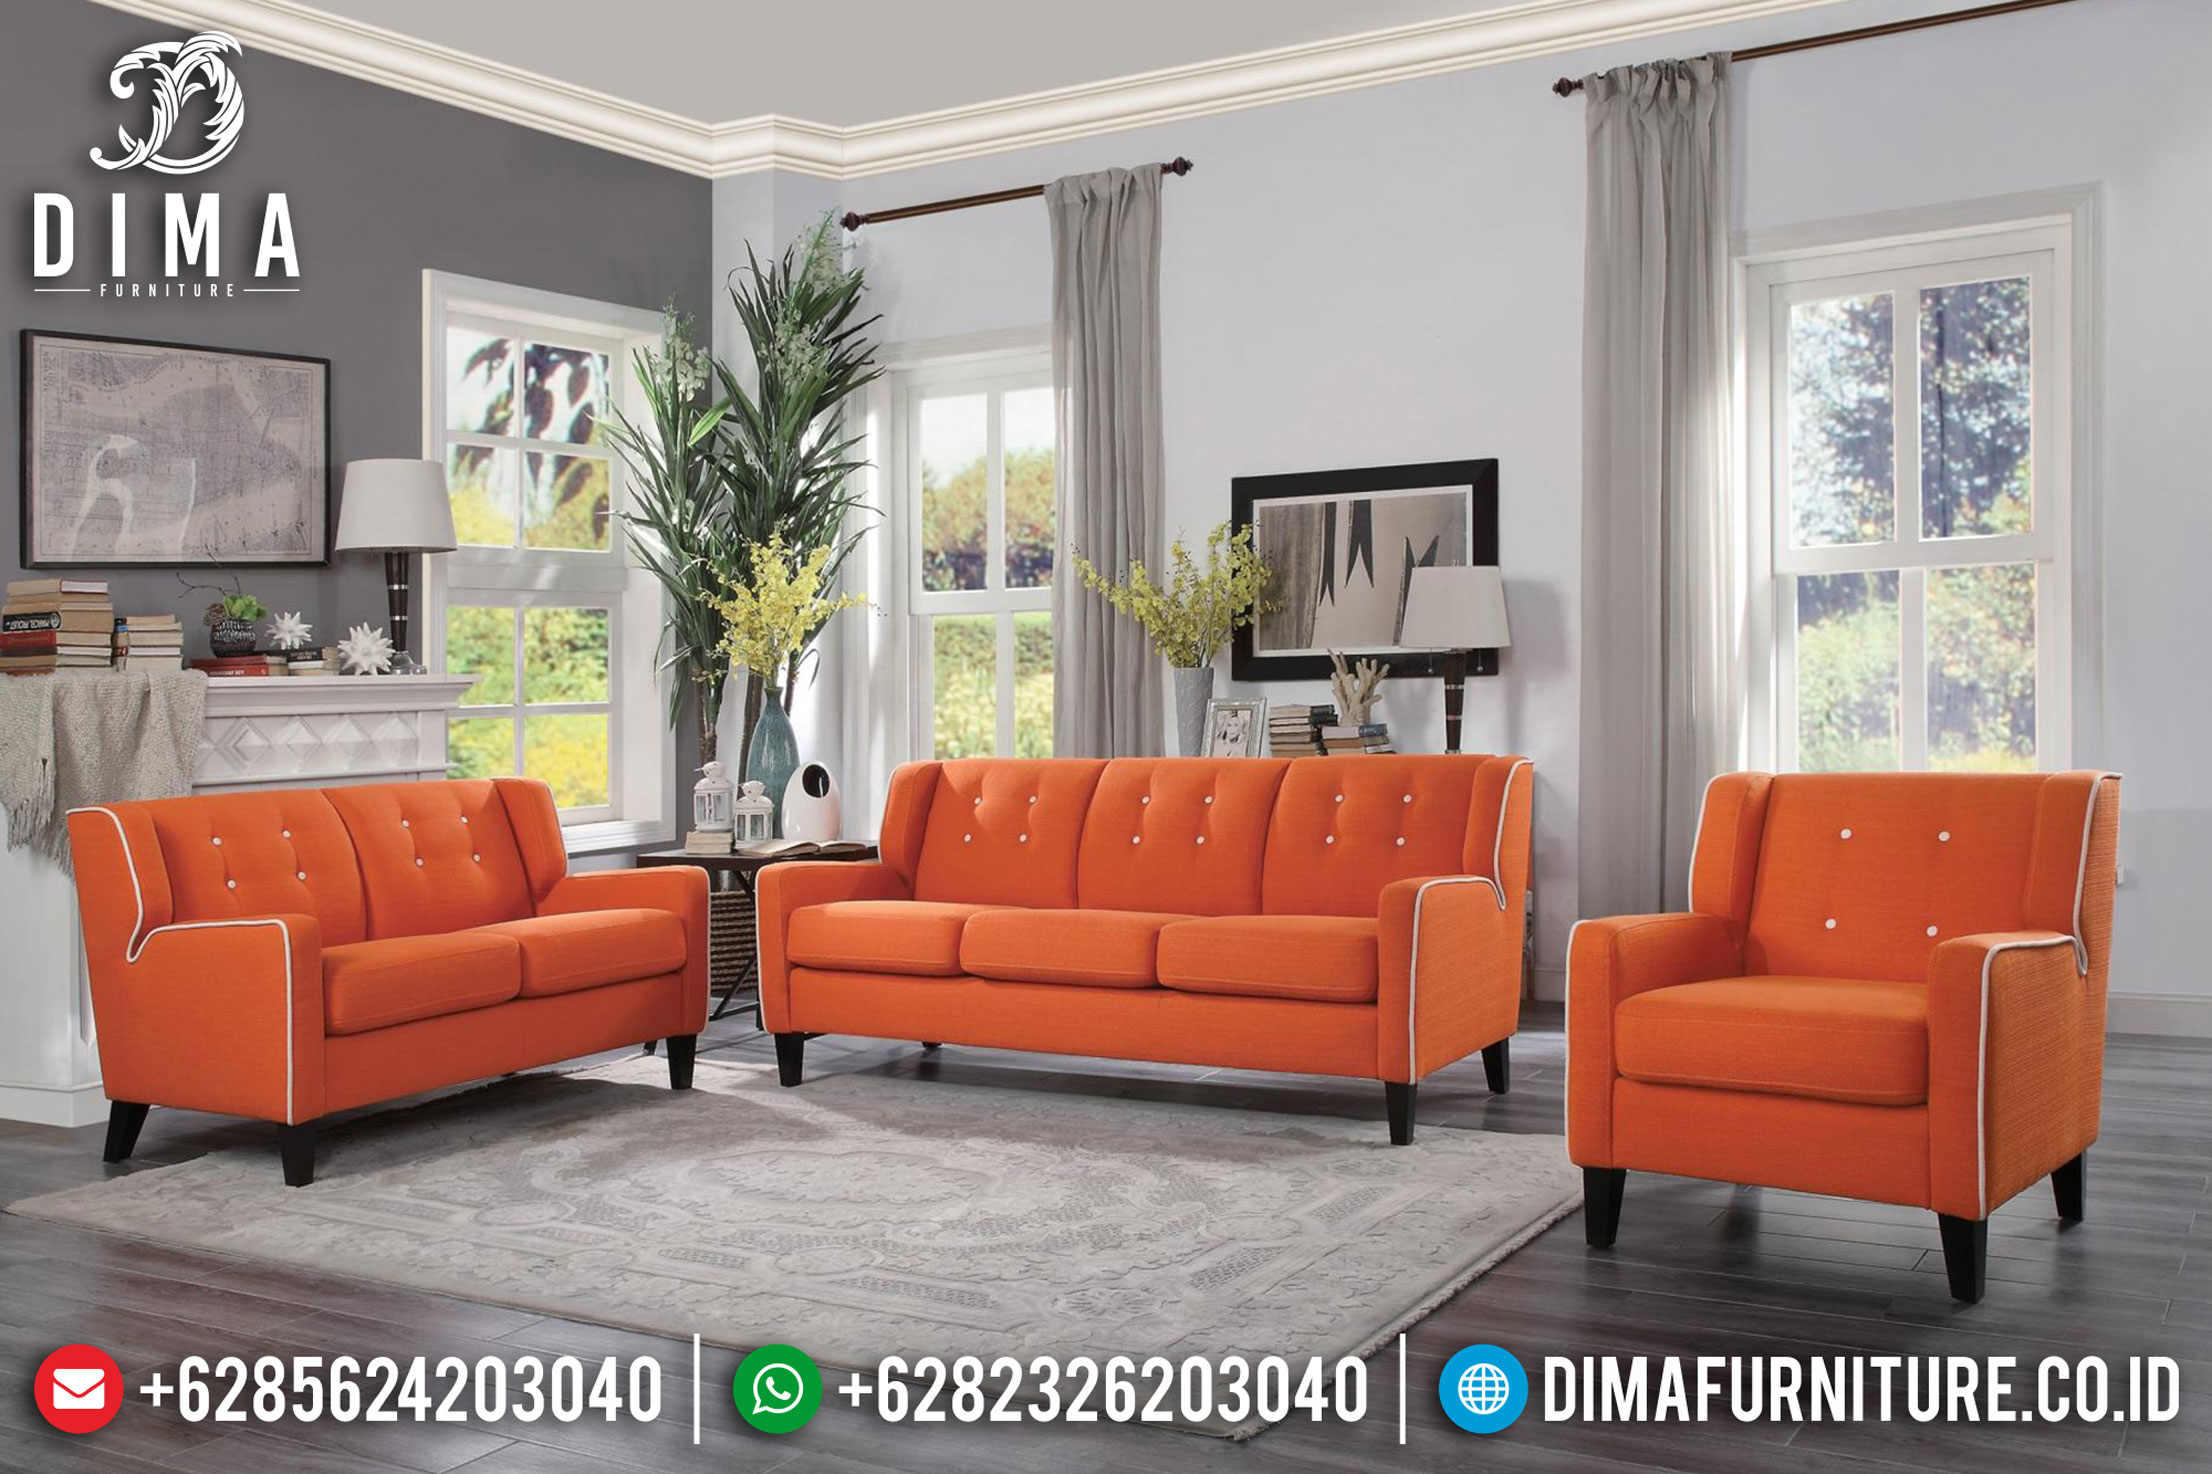 Set Model Sofa Tamu Minimalis Jepara Model Terbaru Warna Orange Custom DF-0855